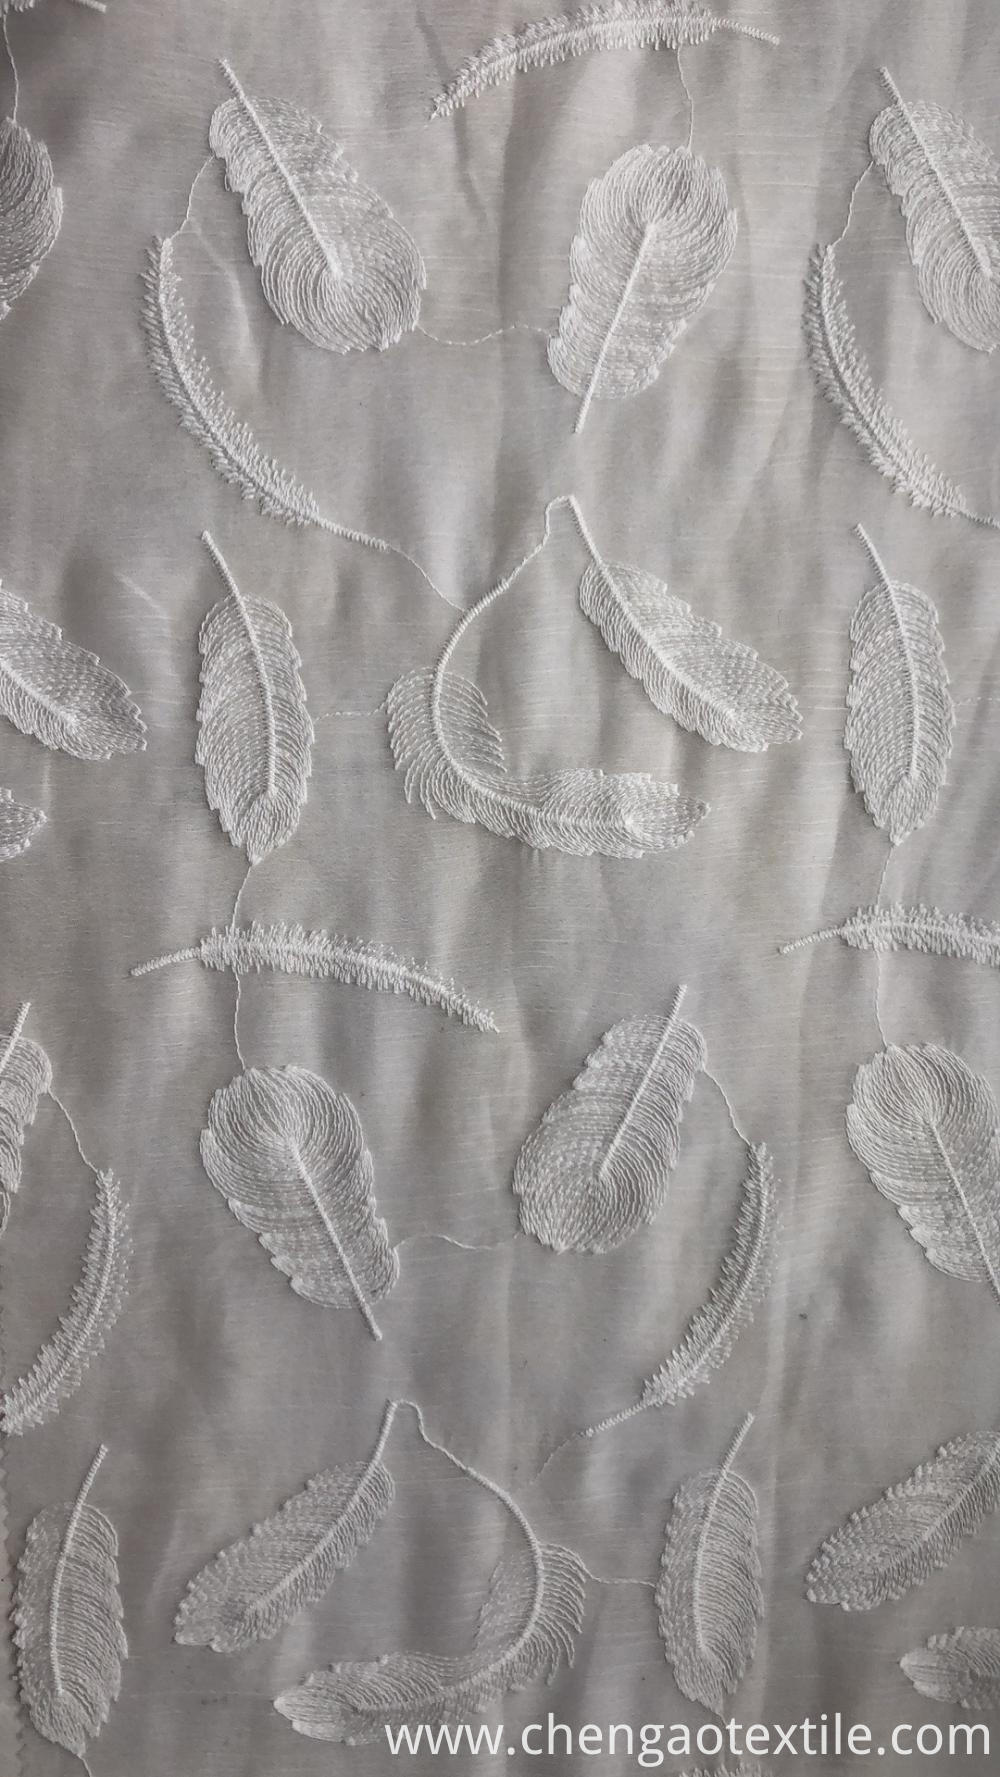 White feather Design Chiffon Embroider Fabric